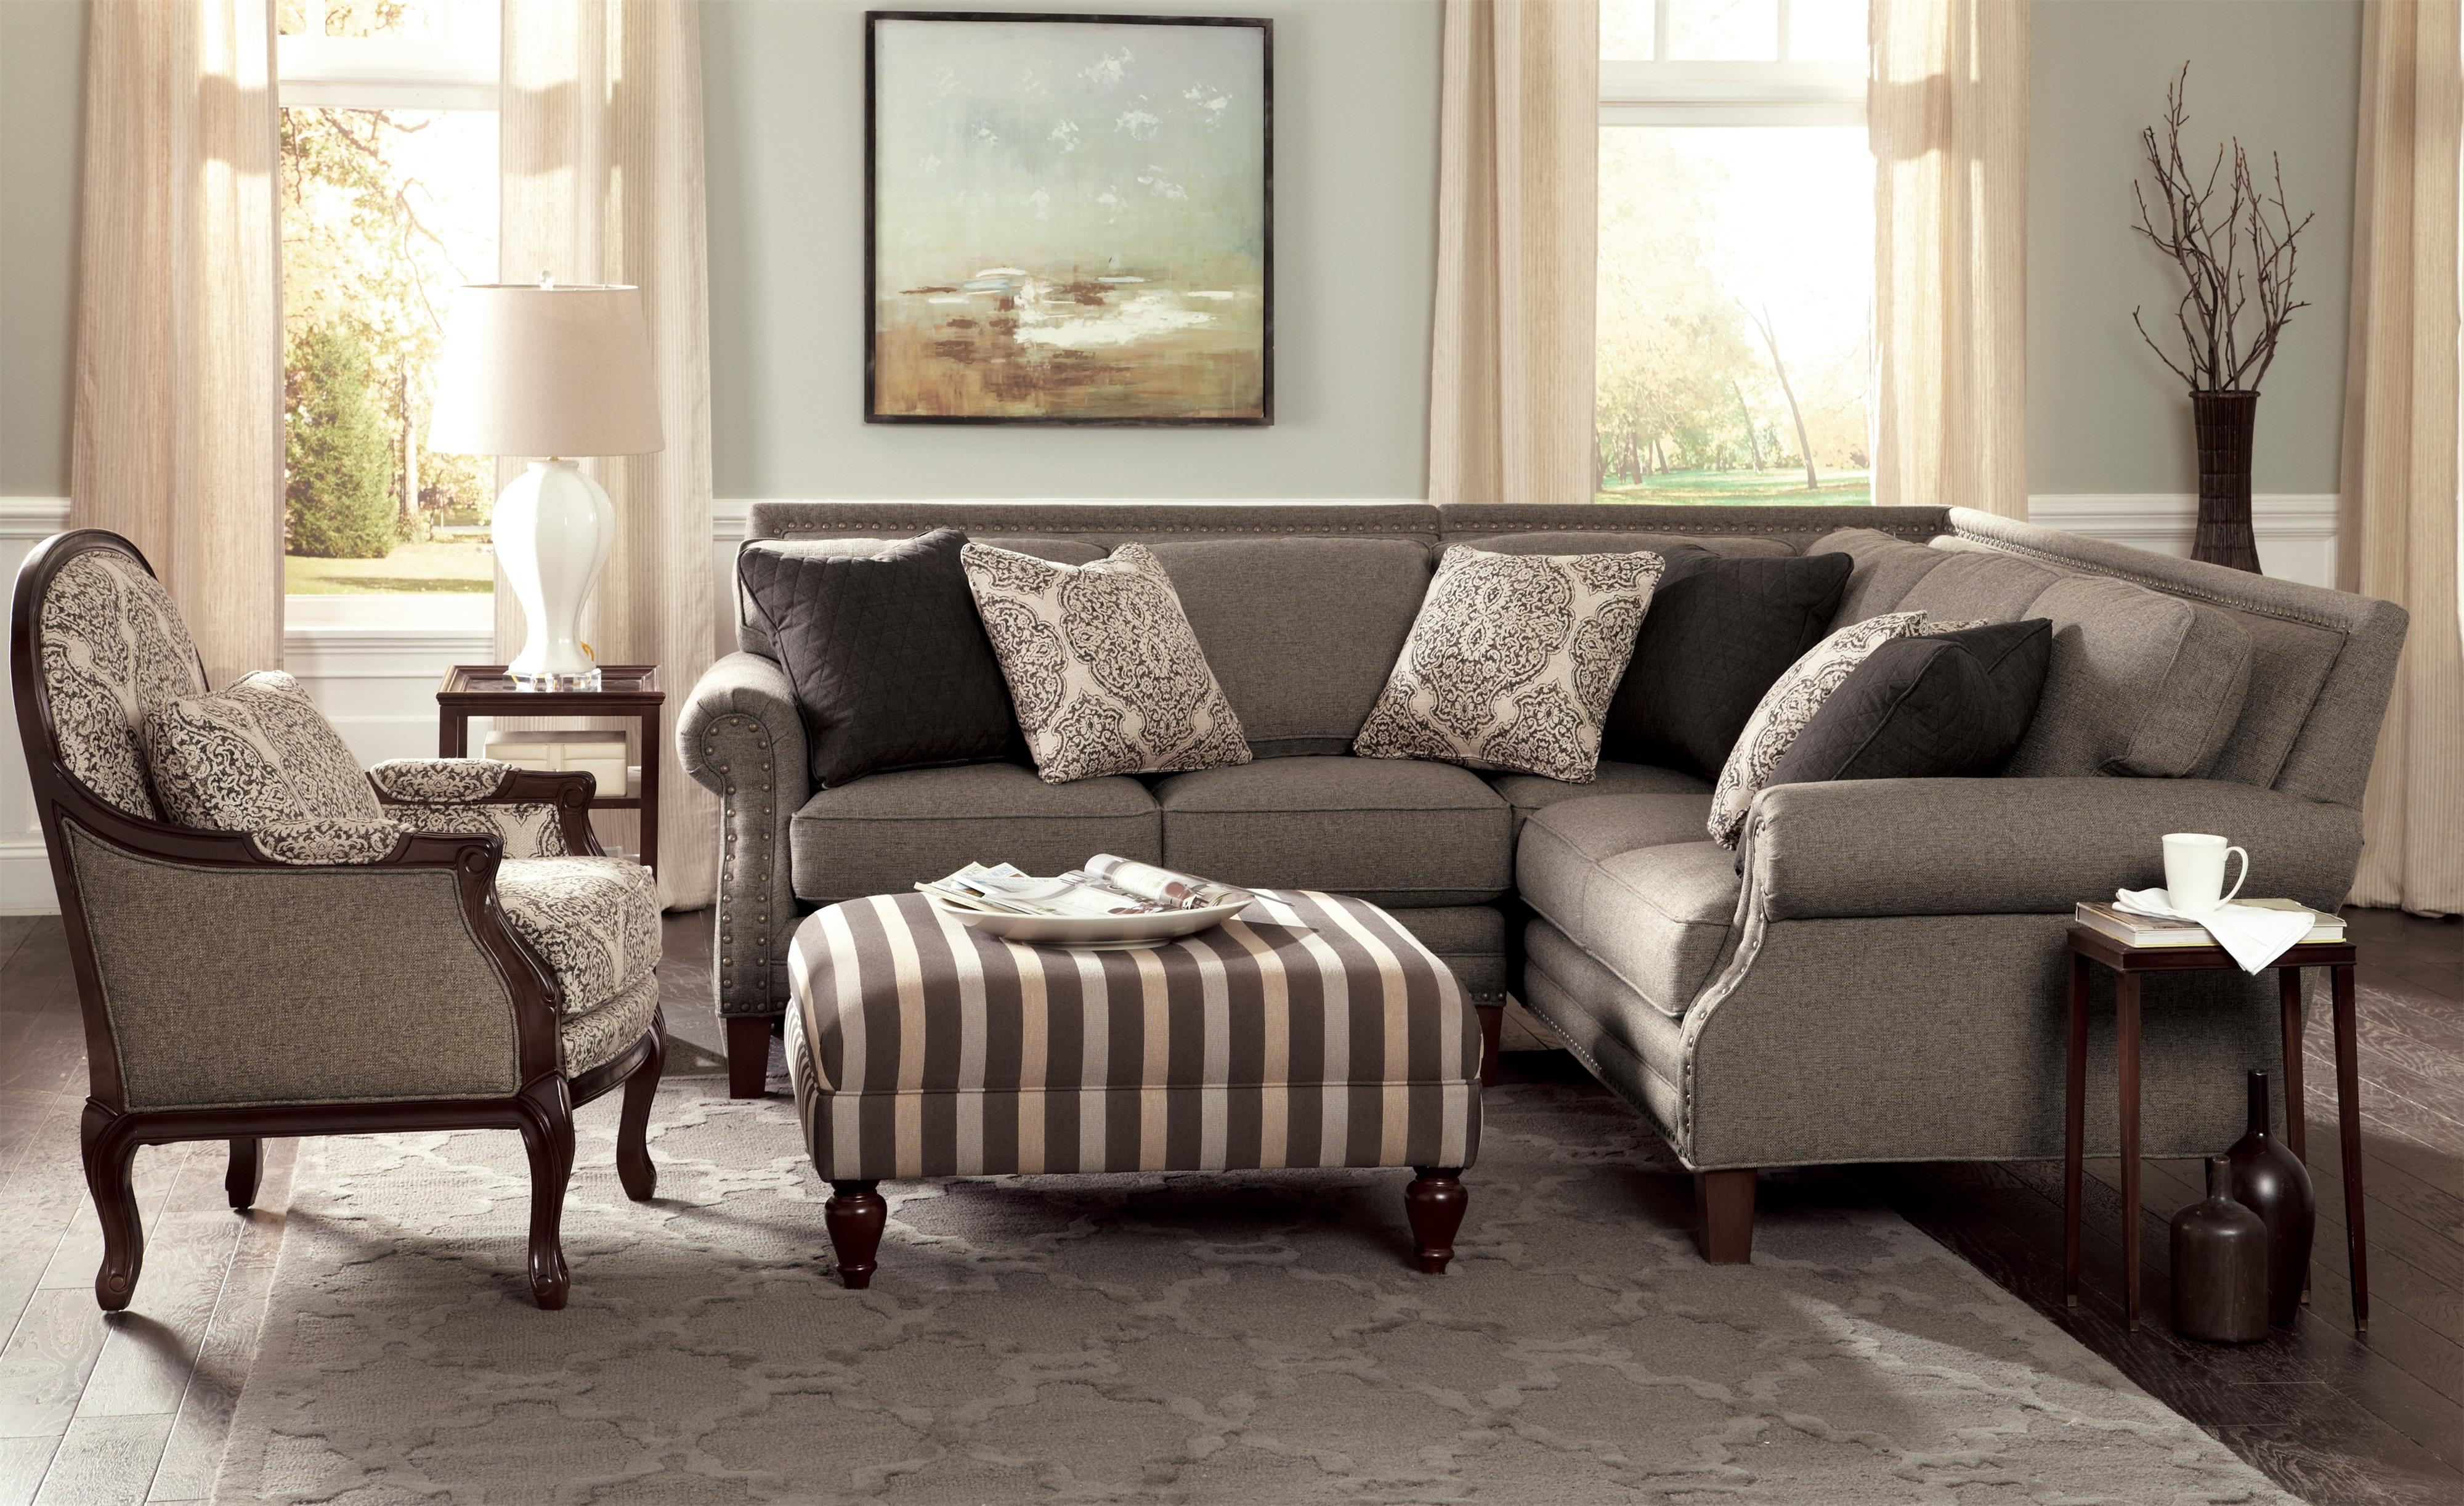 Two Piece Sectional Sofa with Rolled Arms and Light Brass